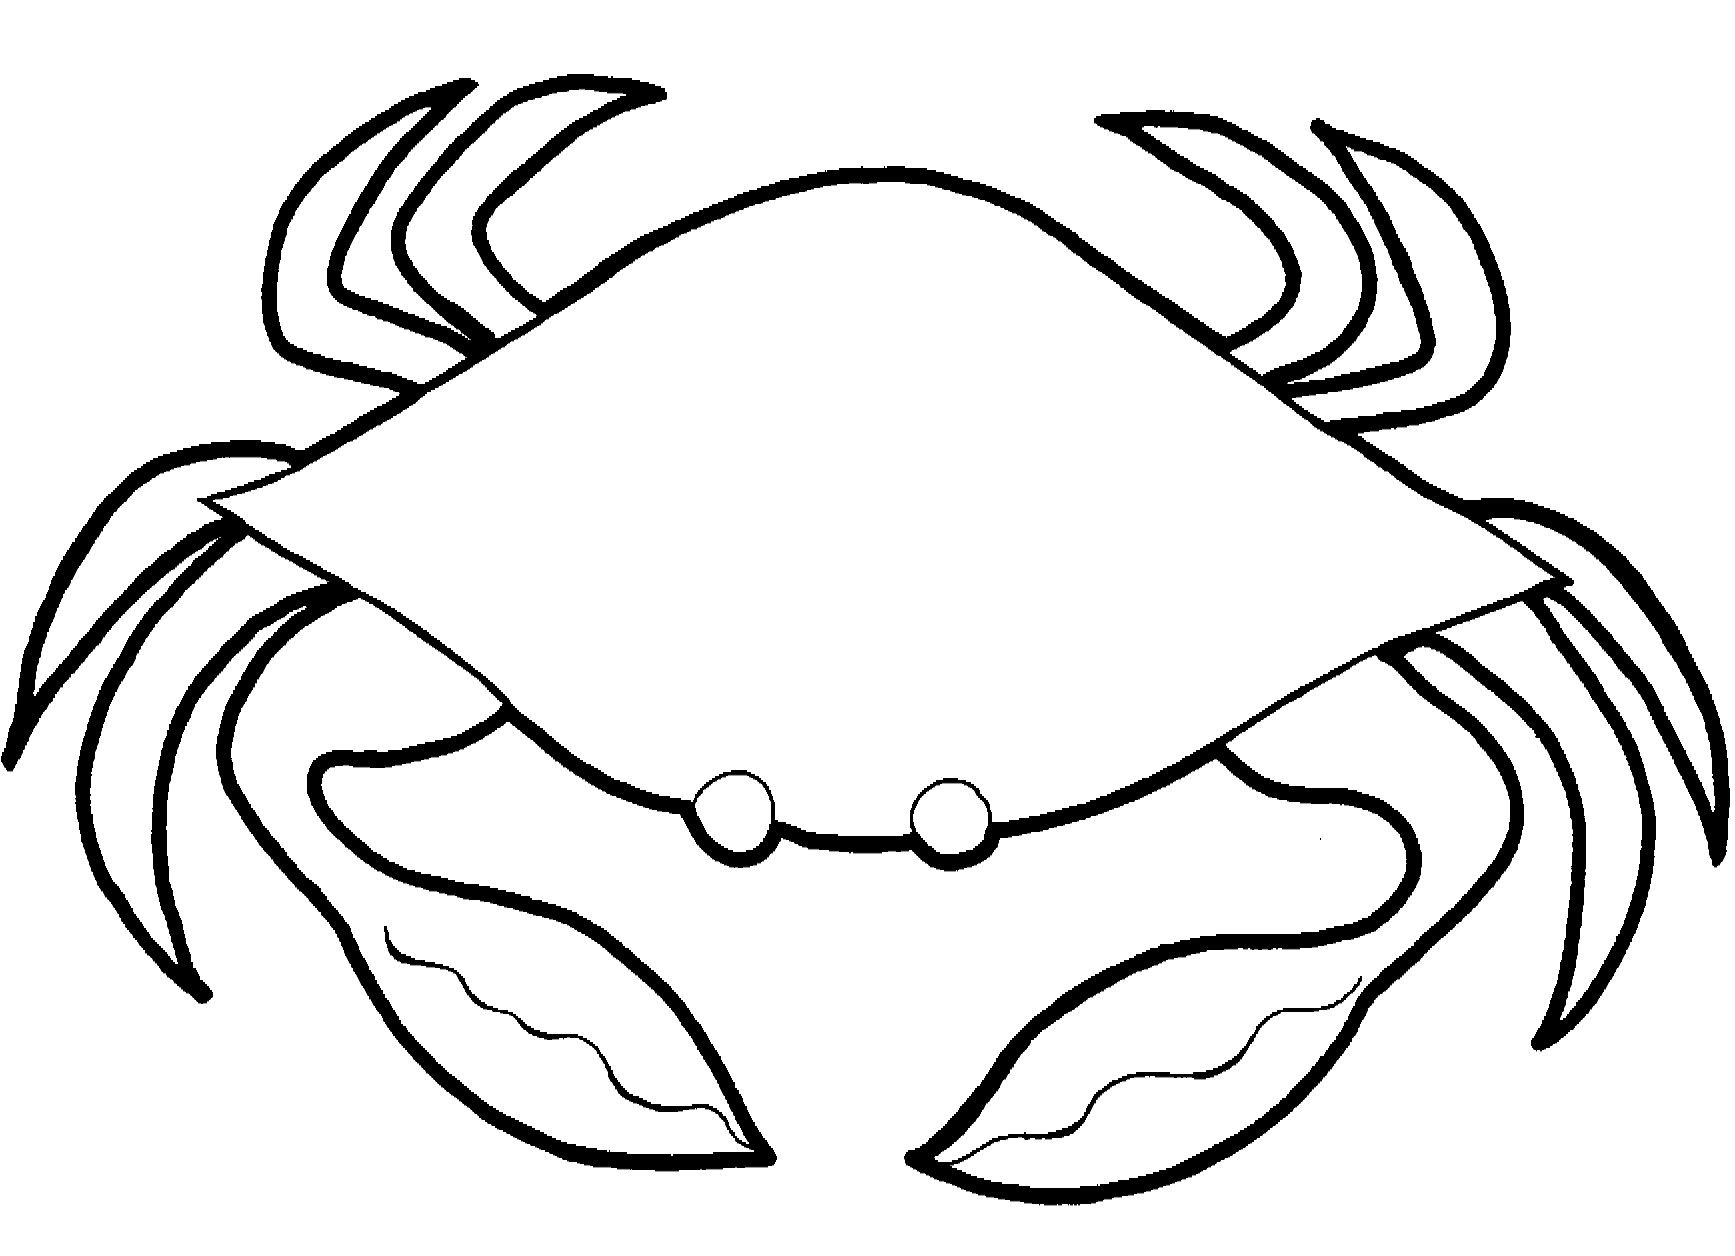 crab coloring pages free printable coloring pages simple c - Coloring Pages Simple